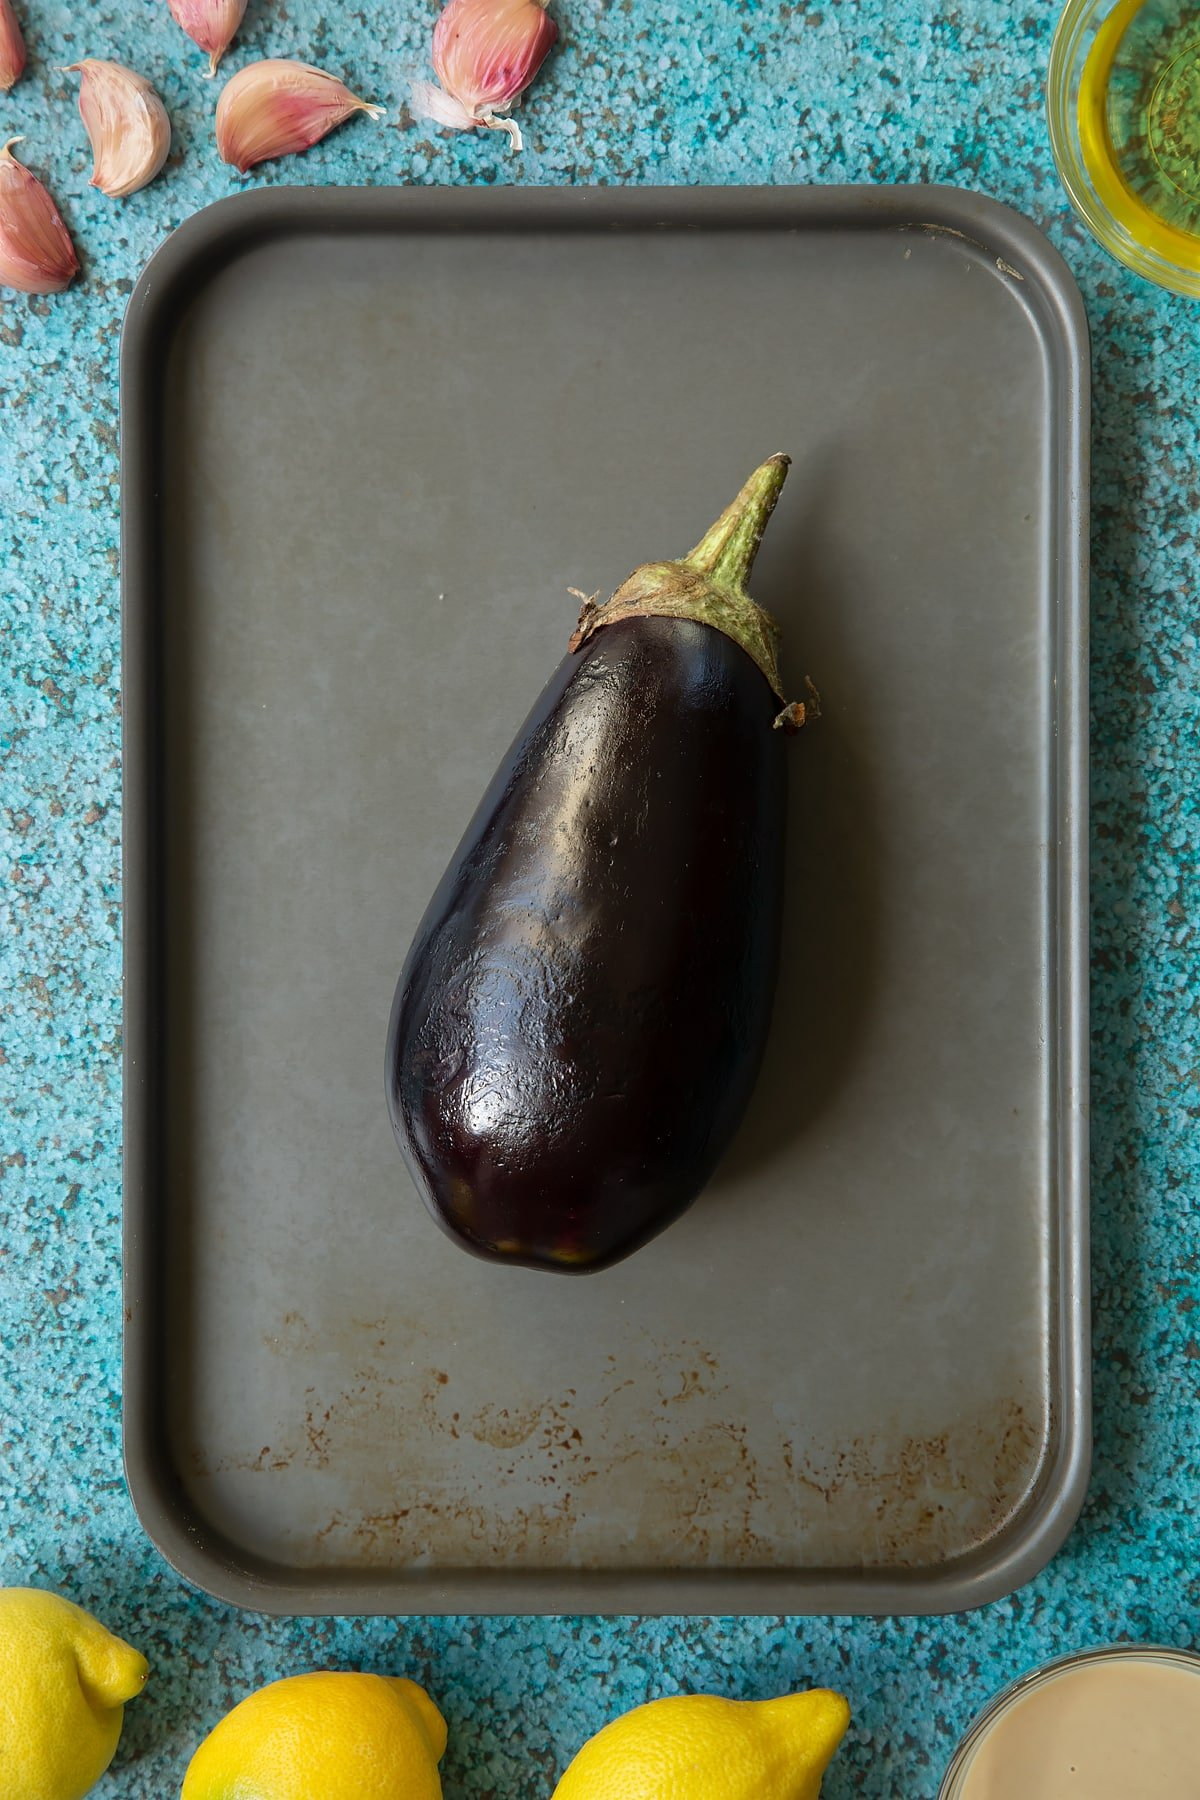 An aubergine on a baking tray. Ingredients to make an easy baba ganoush recipe surround the tray.